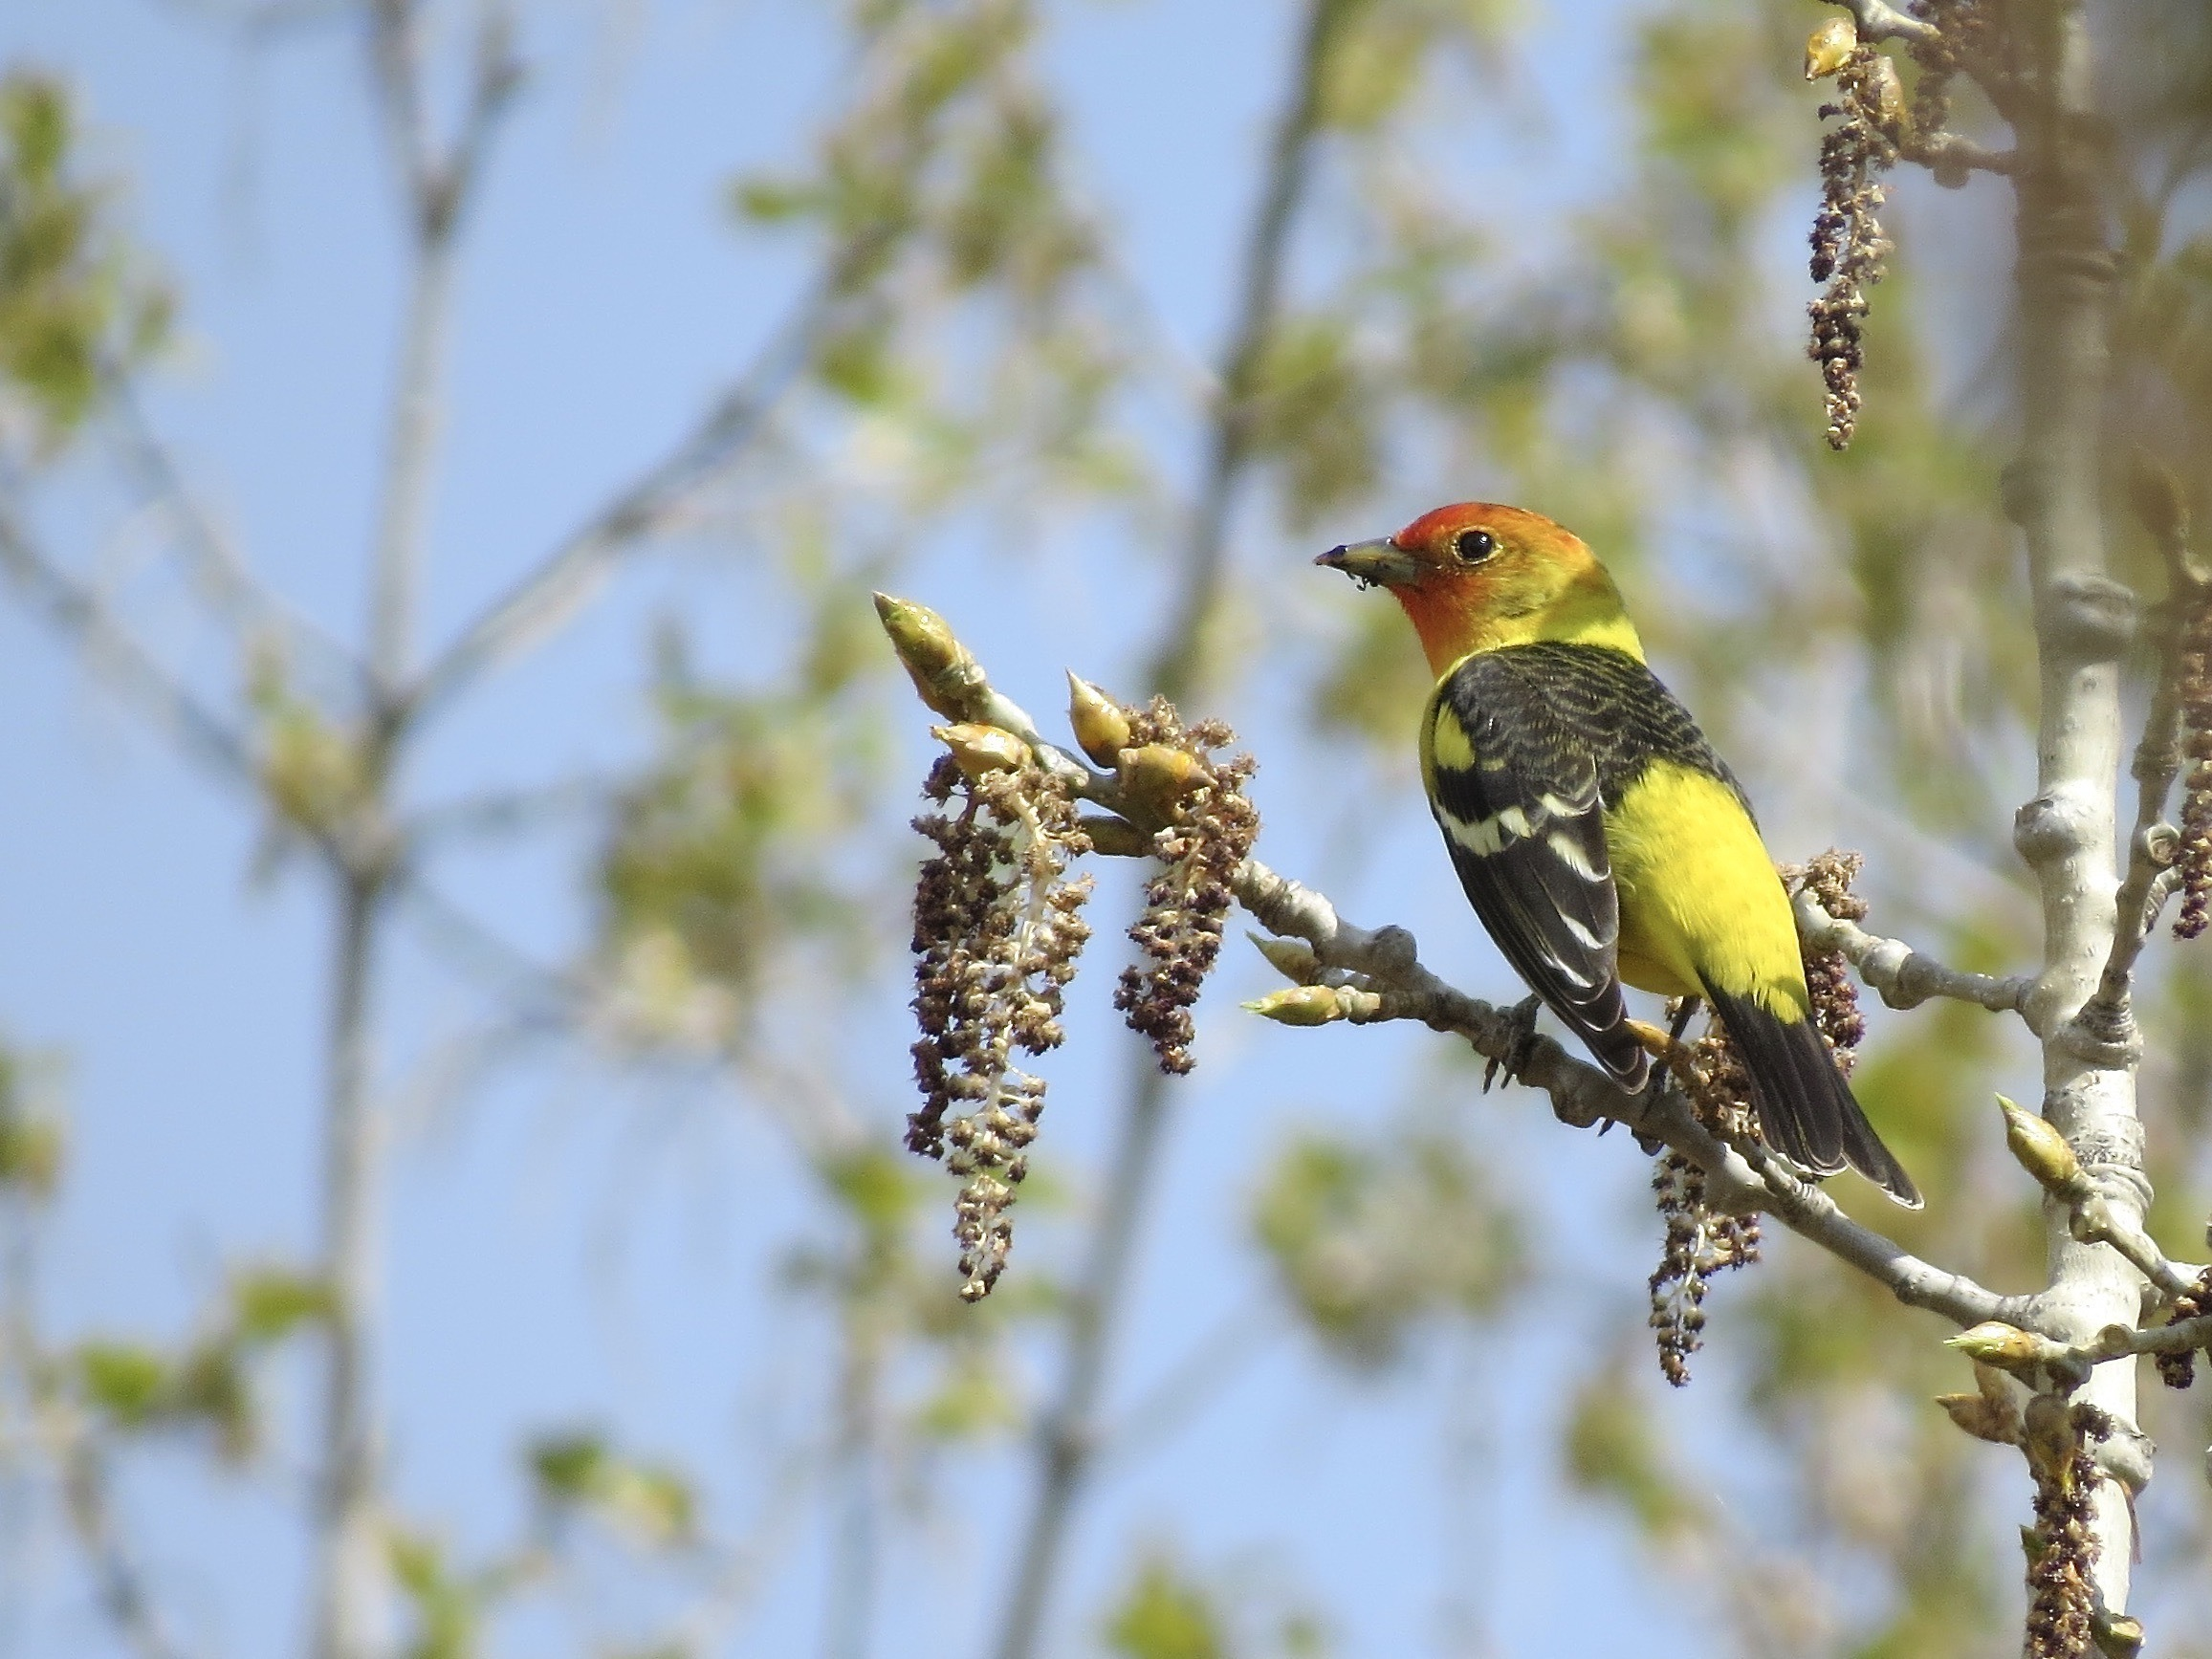 A male Western Tanager on a branch.